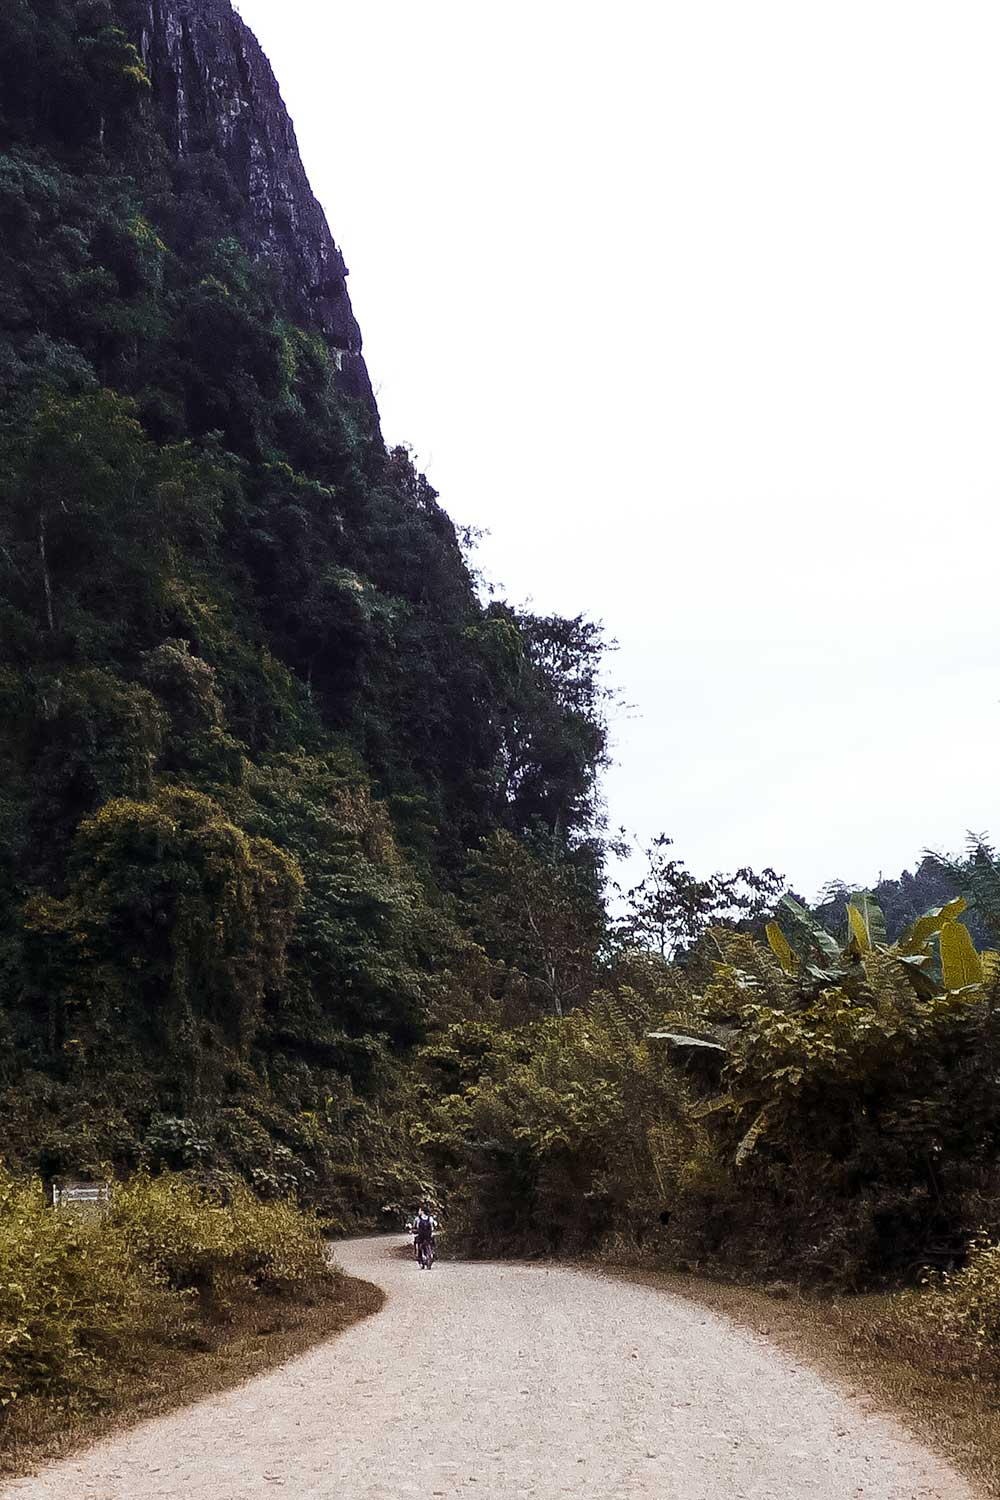 Feeling incredibly small when riding past Vang Vieng's limestone mountains